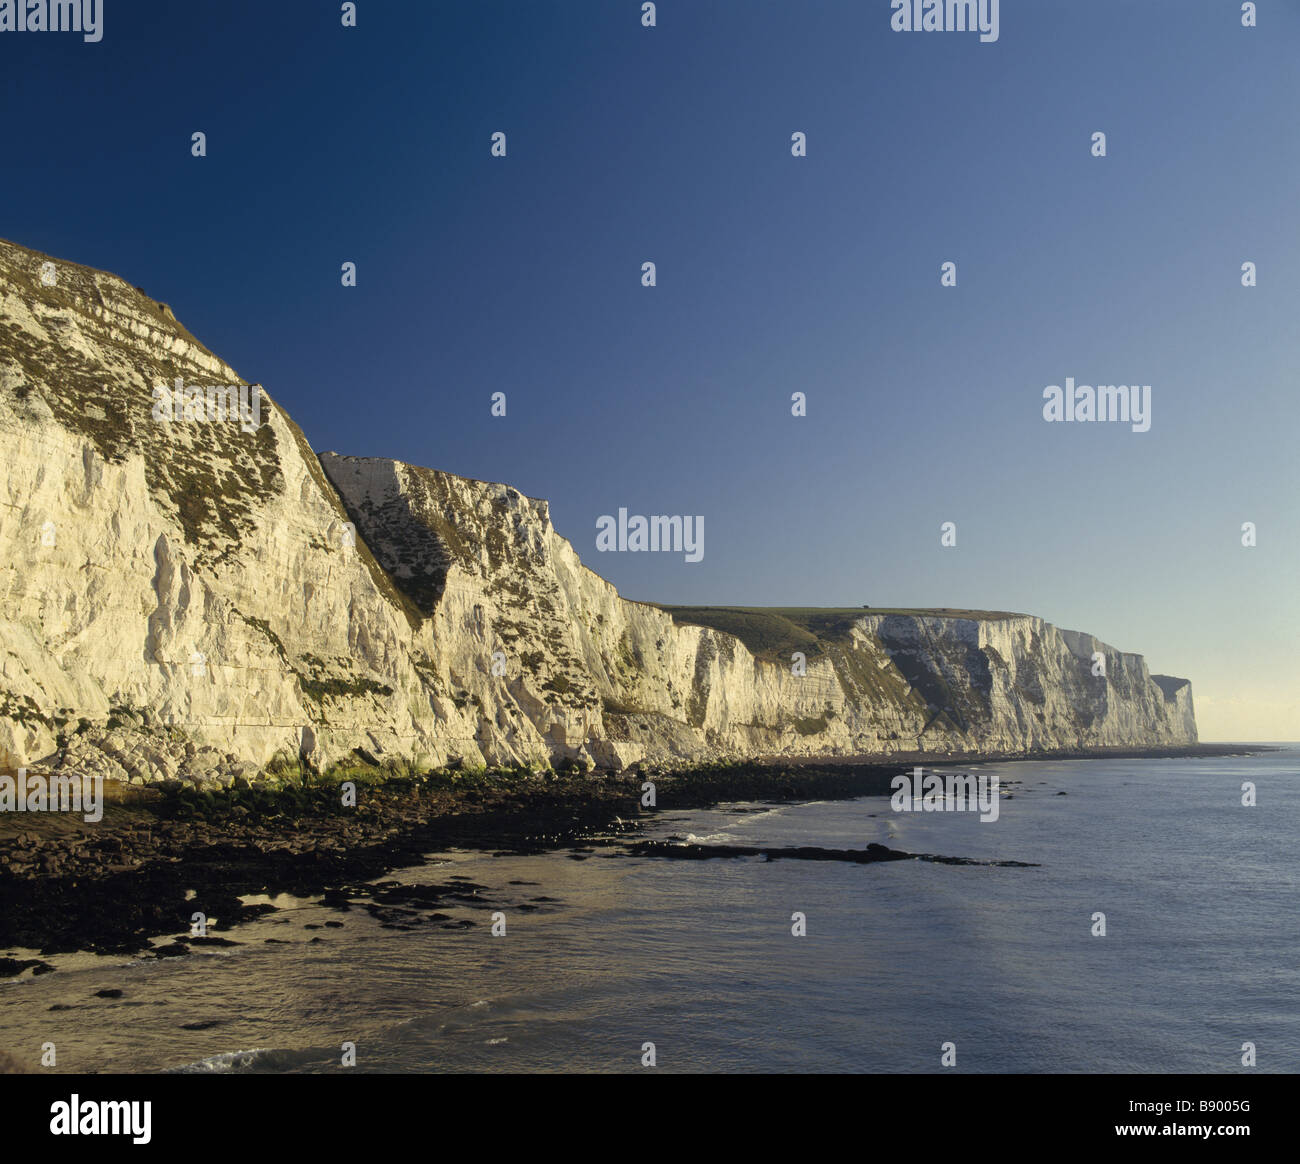 White Cliffs Of Dover In The Early Morning Stock Photo 22742428 Alamy